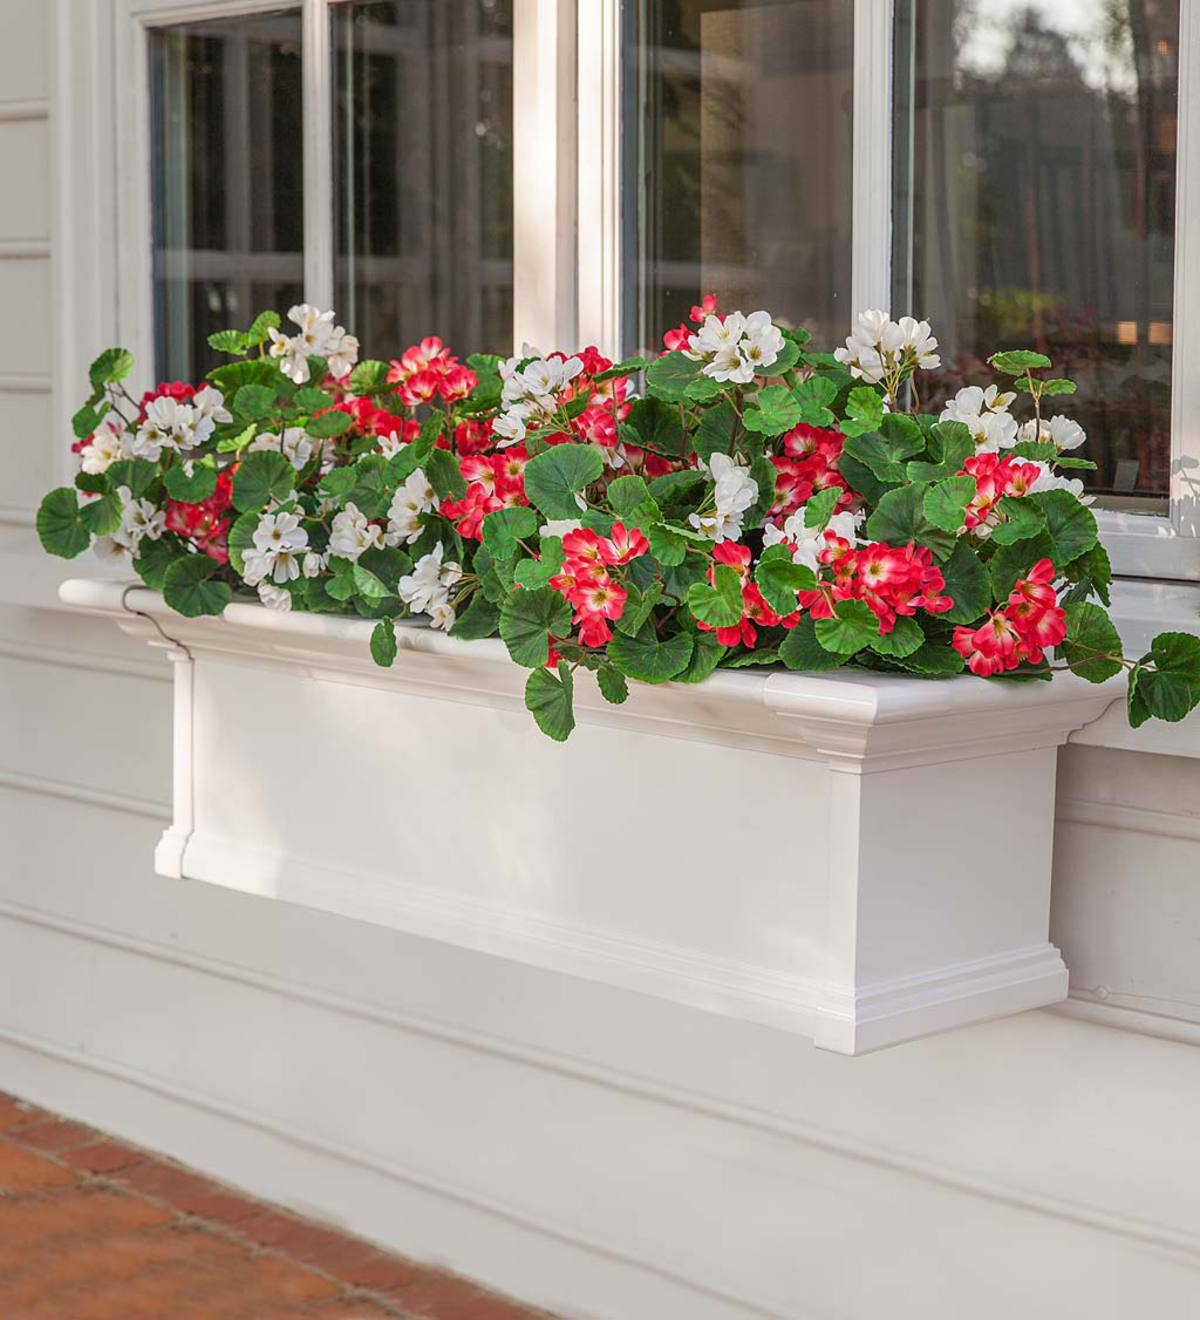 Everlasting Faux Red And White Geranium Window Box Filler Deck